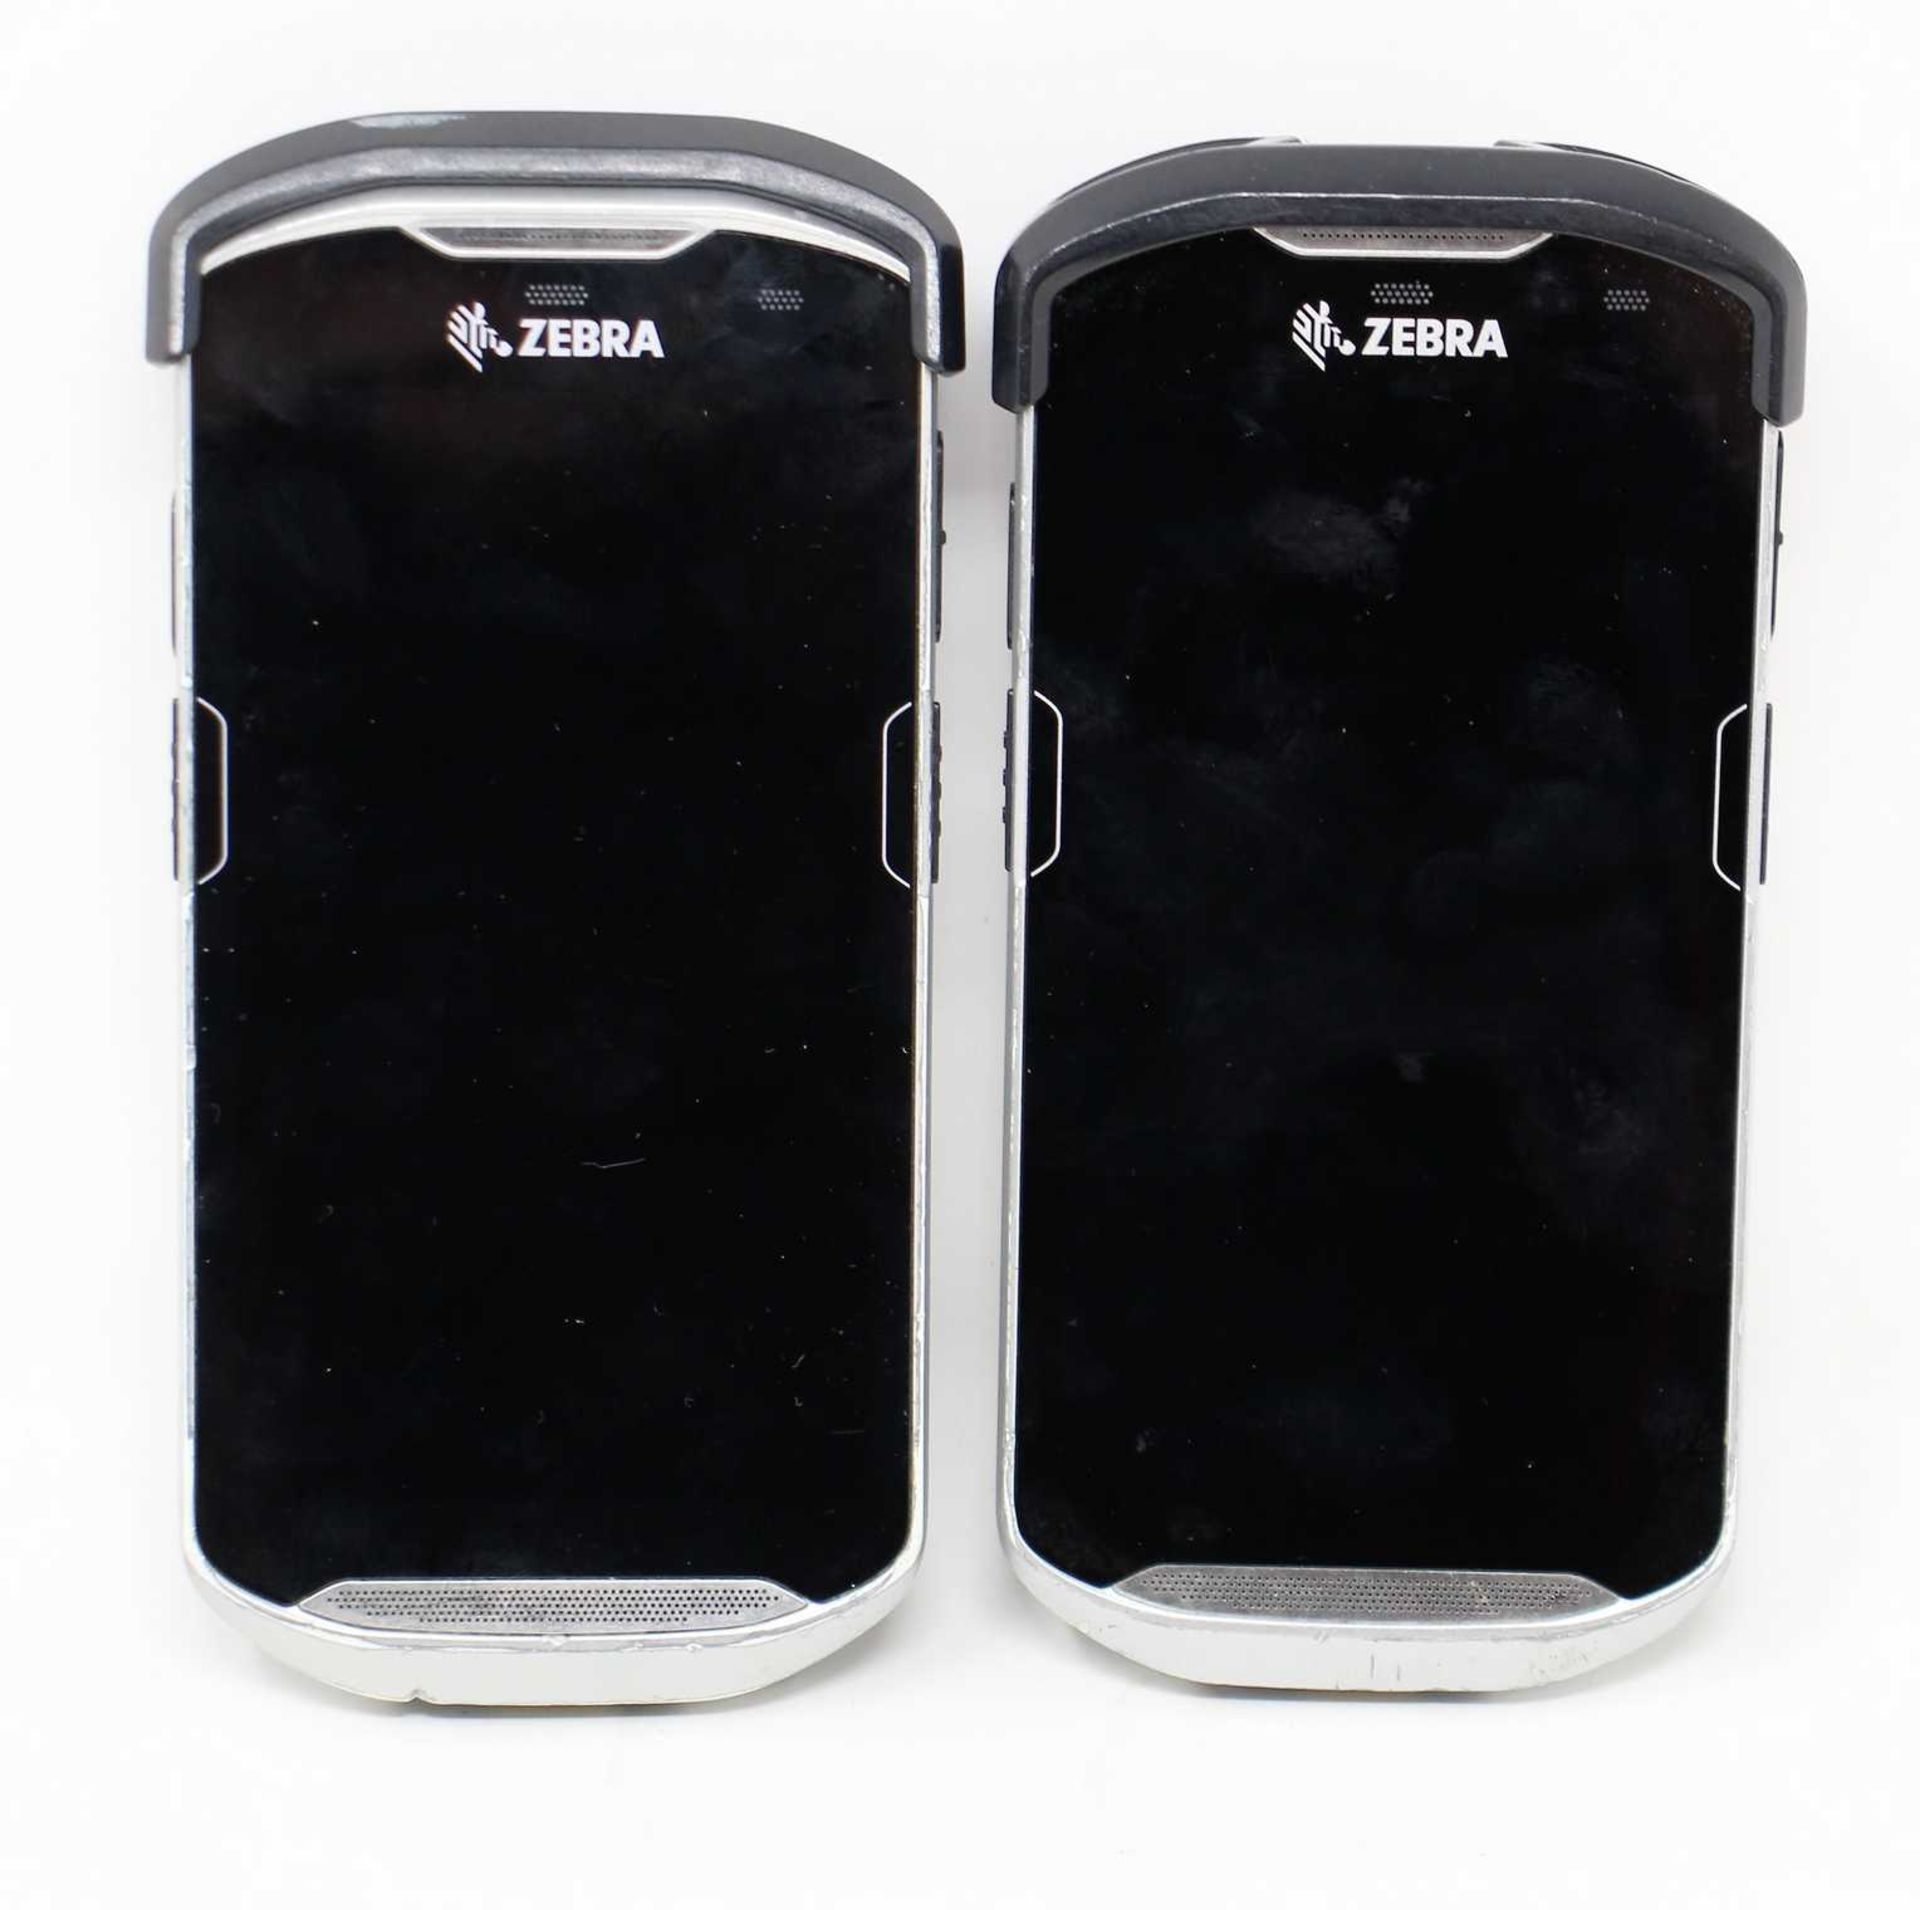 SOLD FOR PARTS: Two pre-owned Zebra TC510K Mobile Handheld Computer Barcodes Scanners (M/N: TC510K-